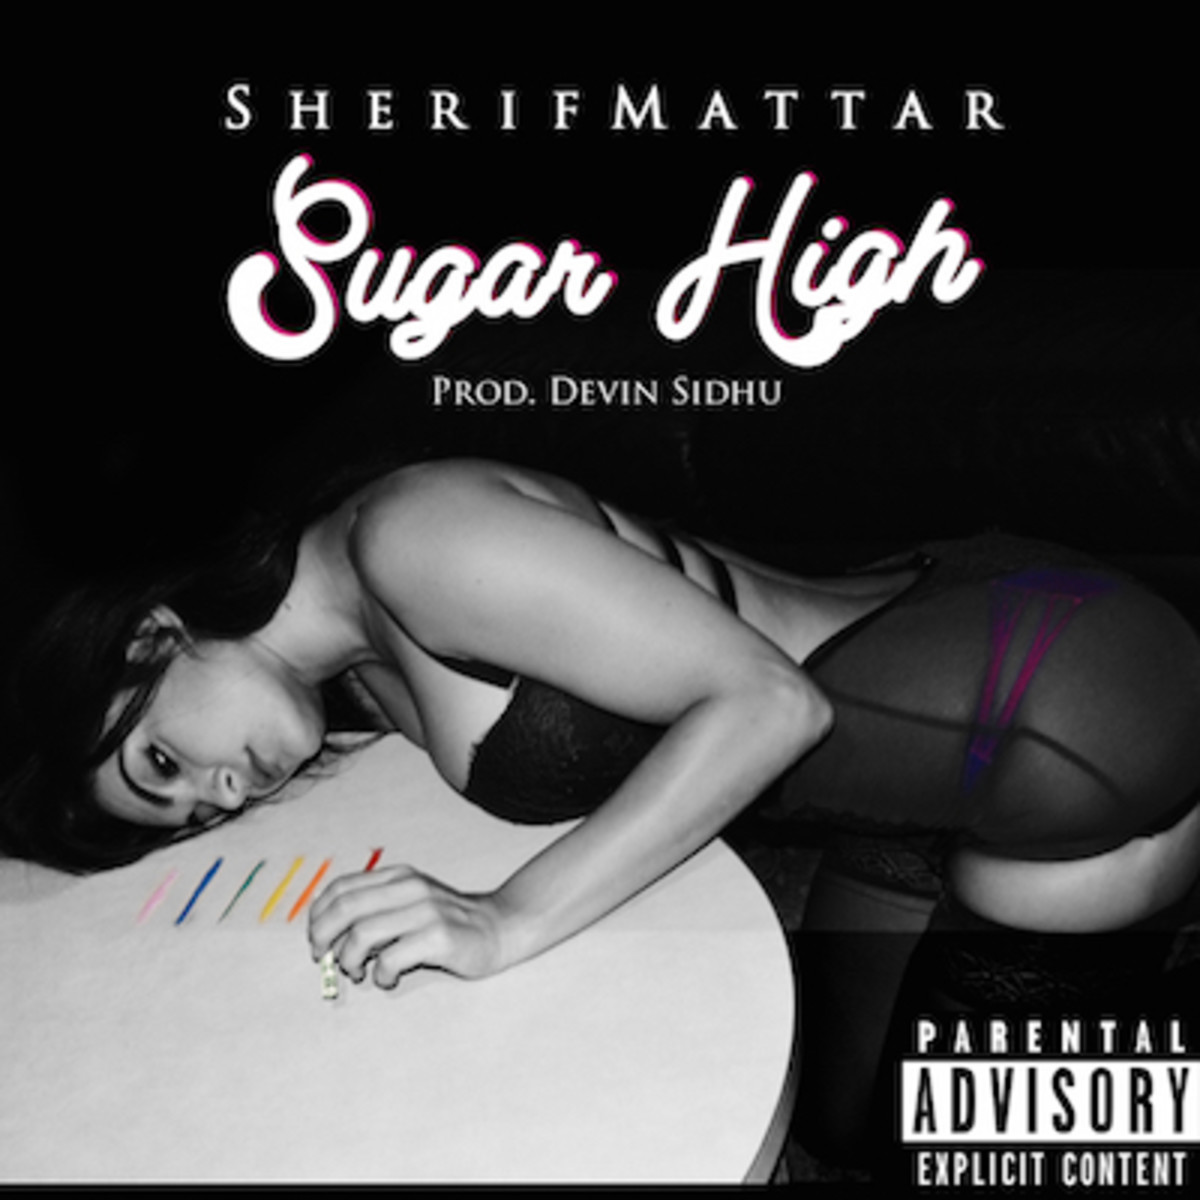 sherif-mattar-sugar-high1.jpg